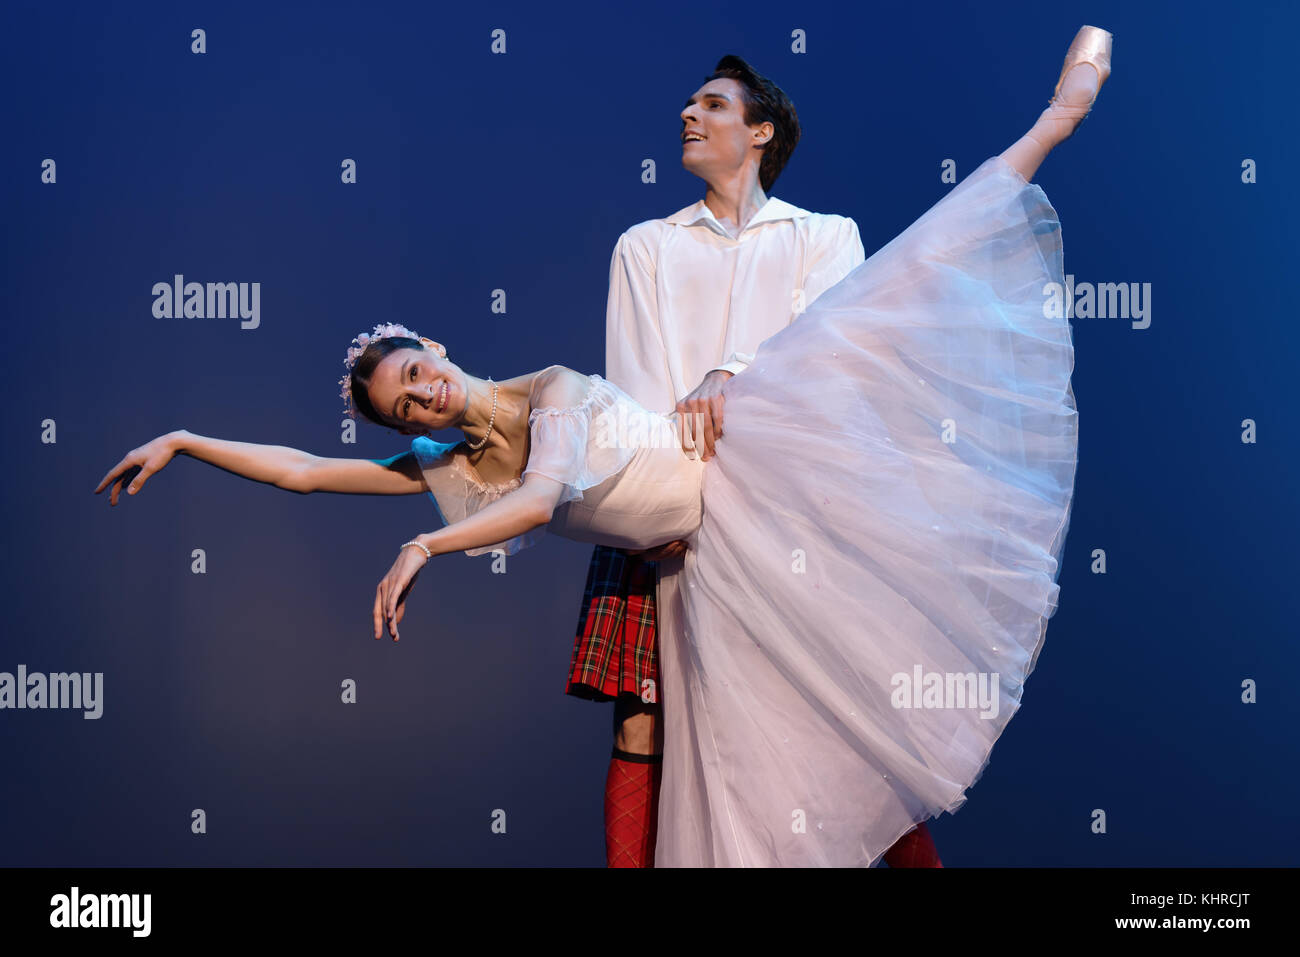 St. Petersburg, Russia - November 16, 2017: Ballet soloists of Mariinsky theater Kristina Shapran and Timur Askerov - Stock Image